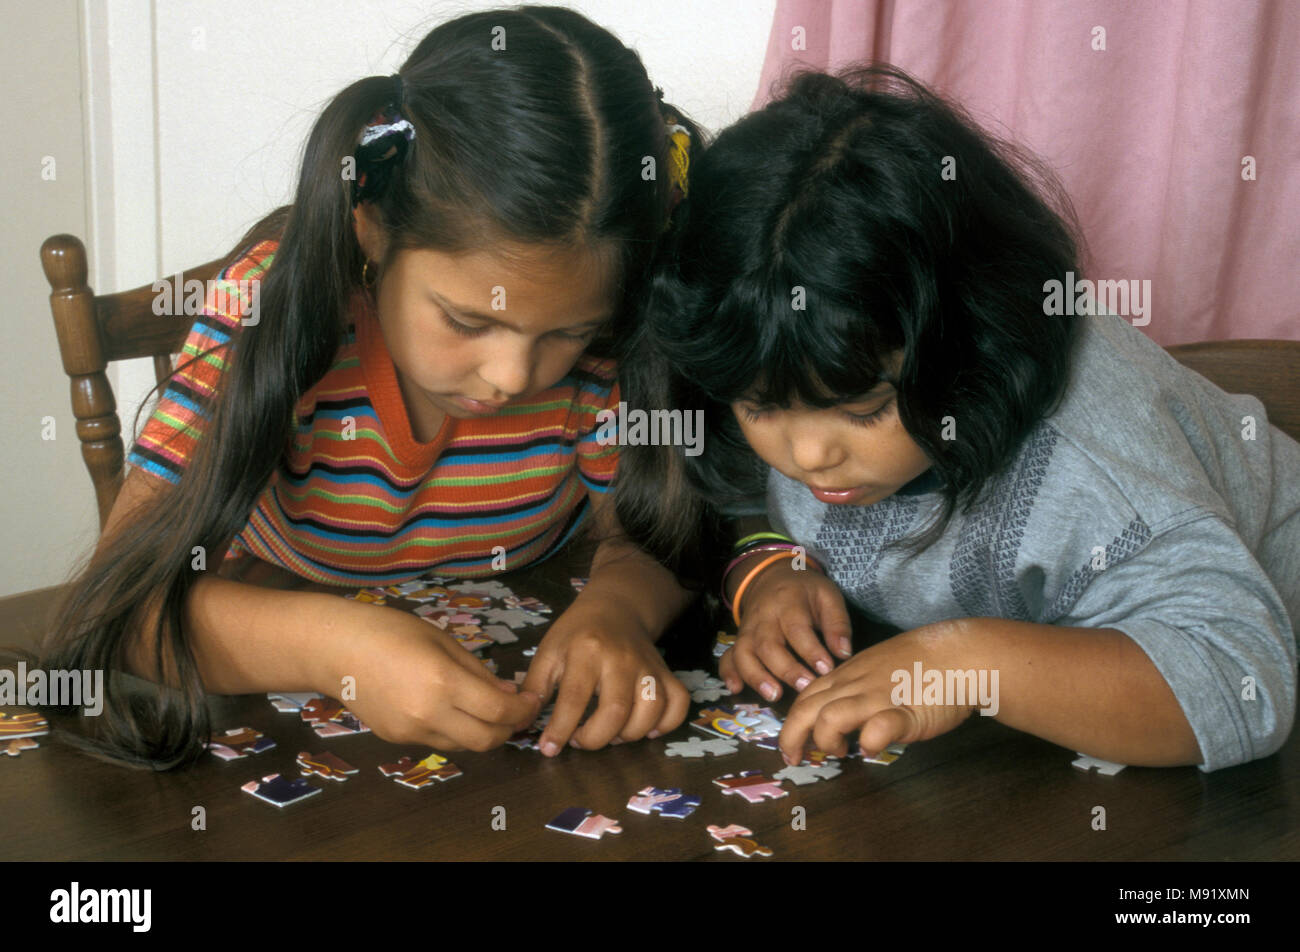 Two Asian sisters doing jigsaw puzzle - Stock Image